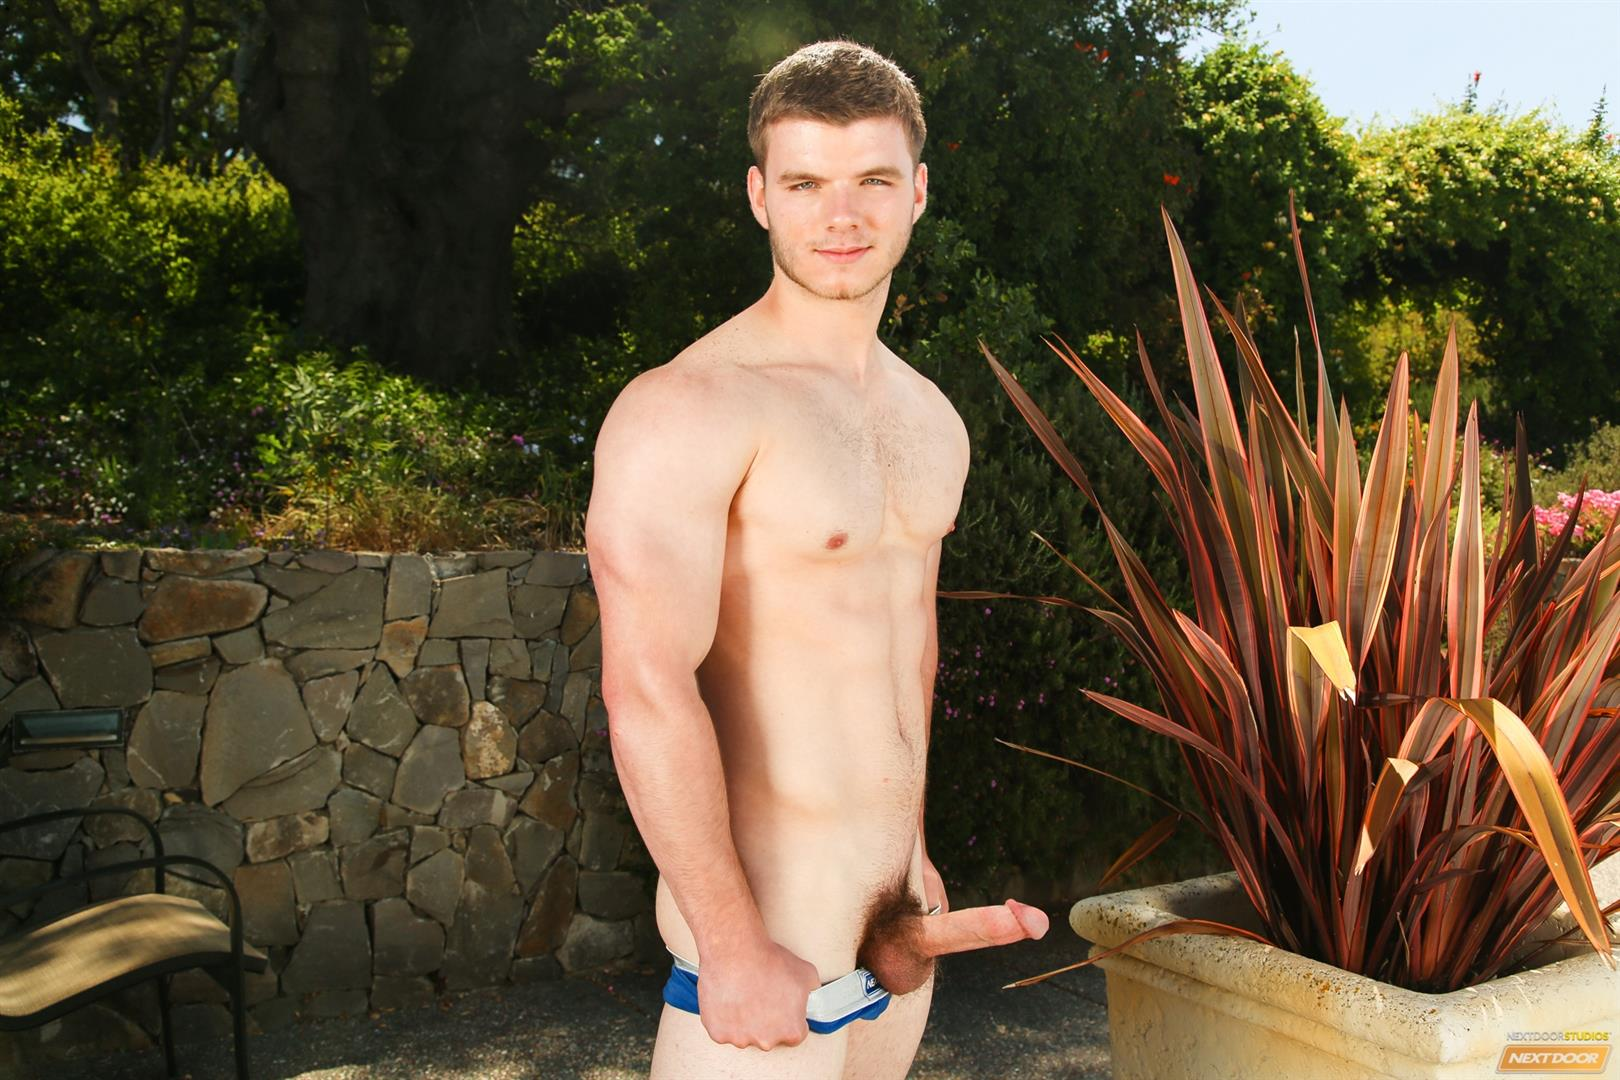 Next-Door-Male-Ivan-James-Muscular-Twink-Masturbation-Thick-Cock-Amateur-Gay-Porn-09 West Virginia Country Boy Strokes His Big Thick Cock